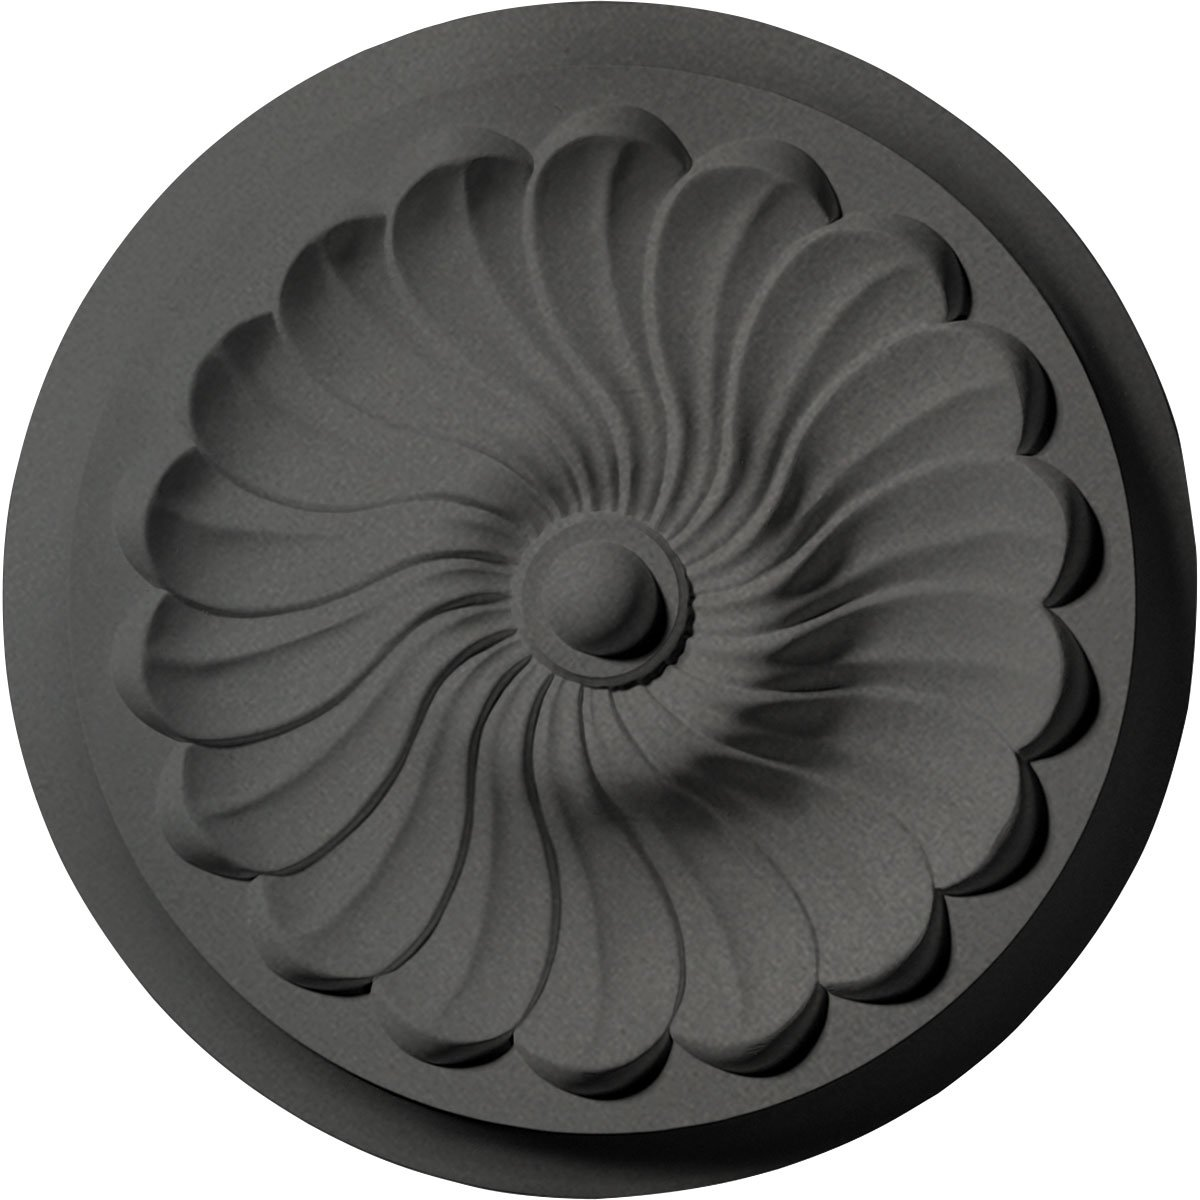 Ekena Millwork CM12FLSGS 12 OD X 2 1/4'' P Flower Spiral Ceiling Medallion fits Canopies up to 2'', Steel Gray